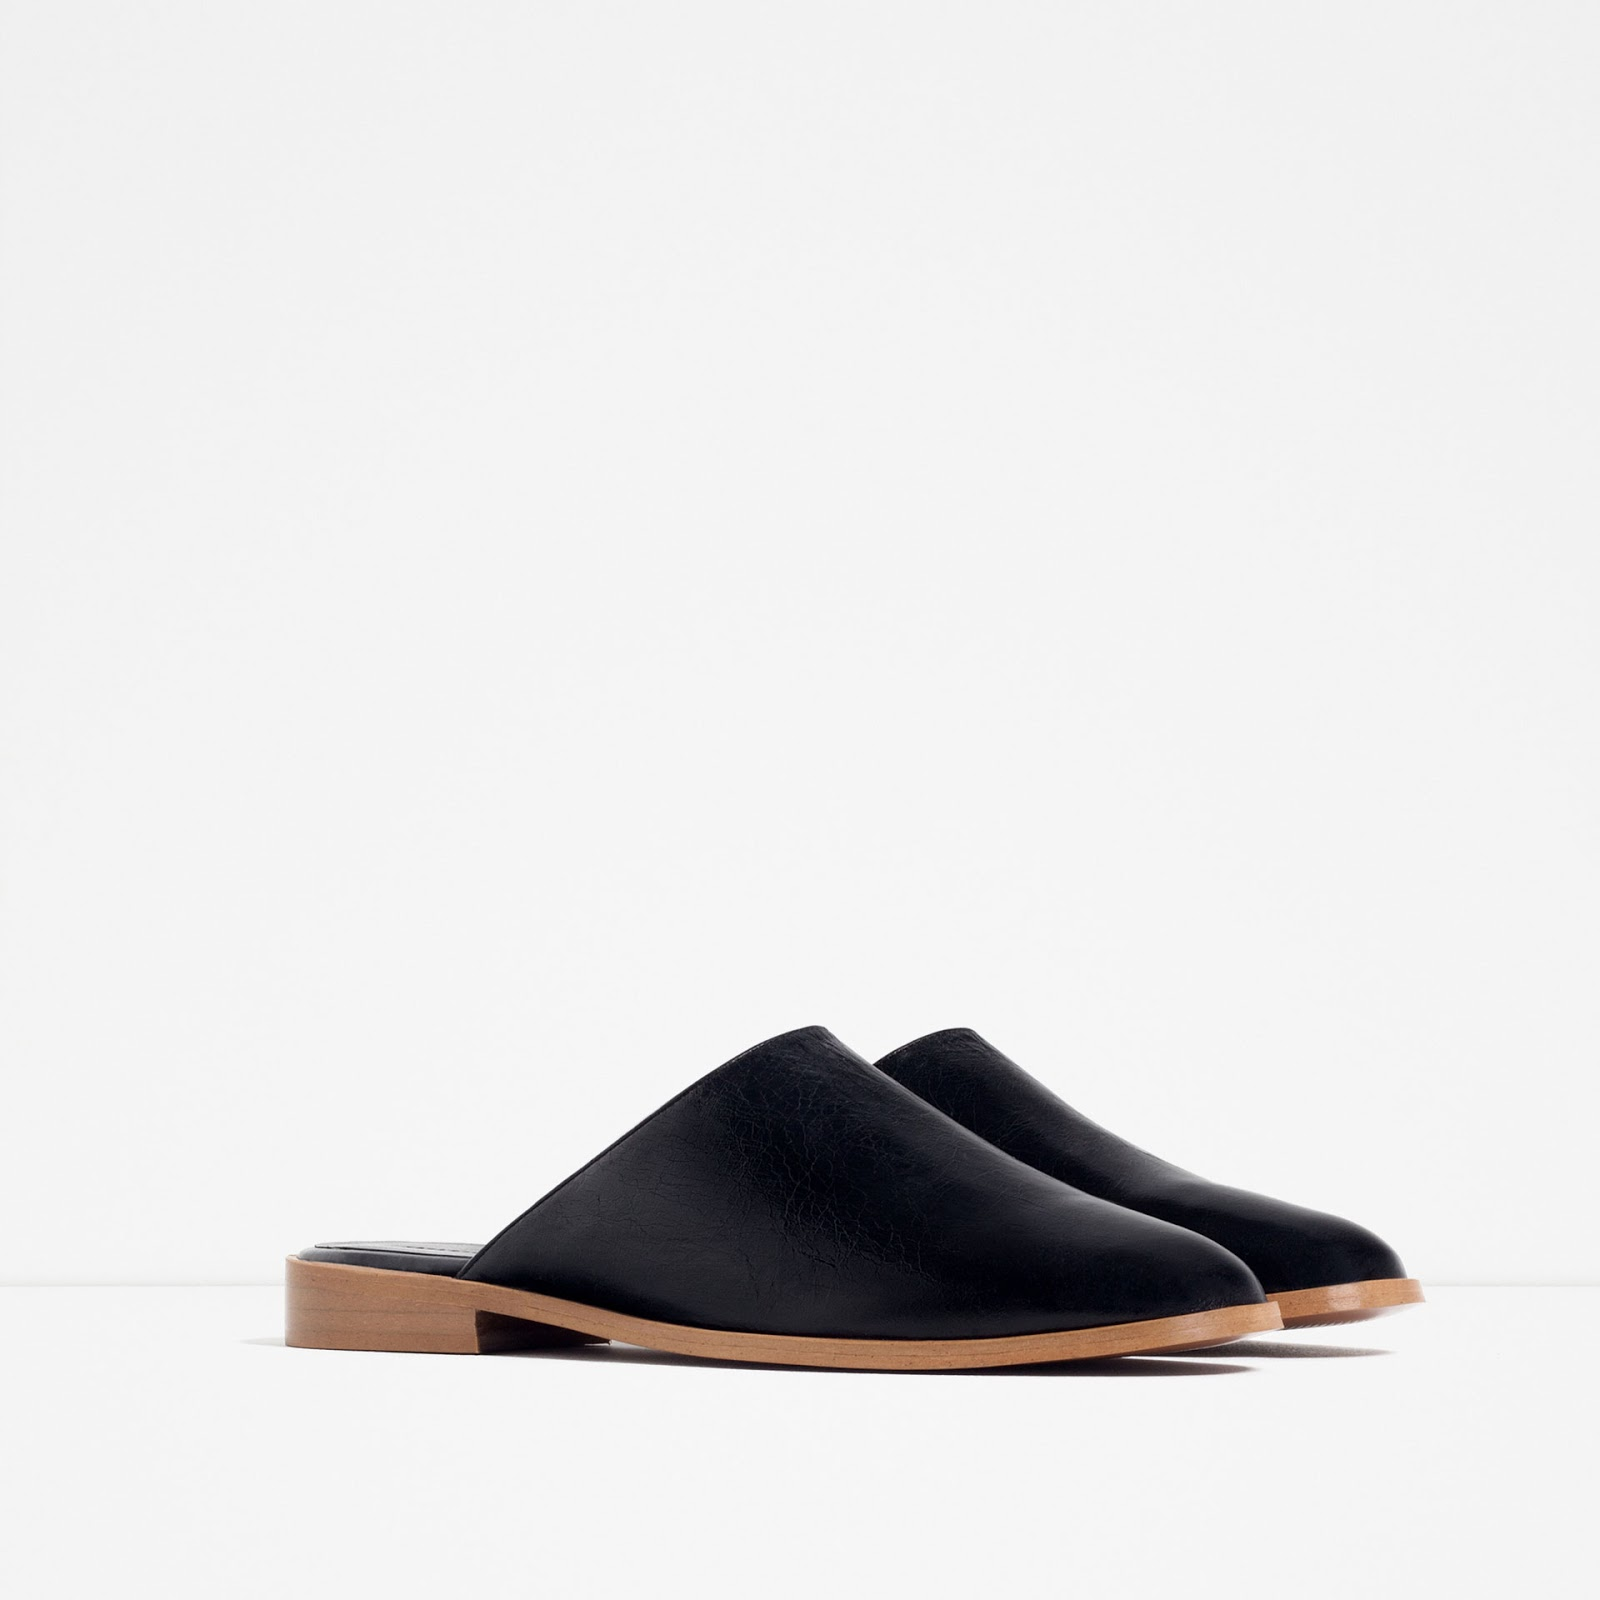 leather slide on shoes from Zara